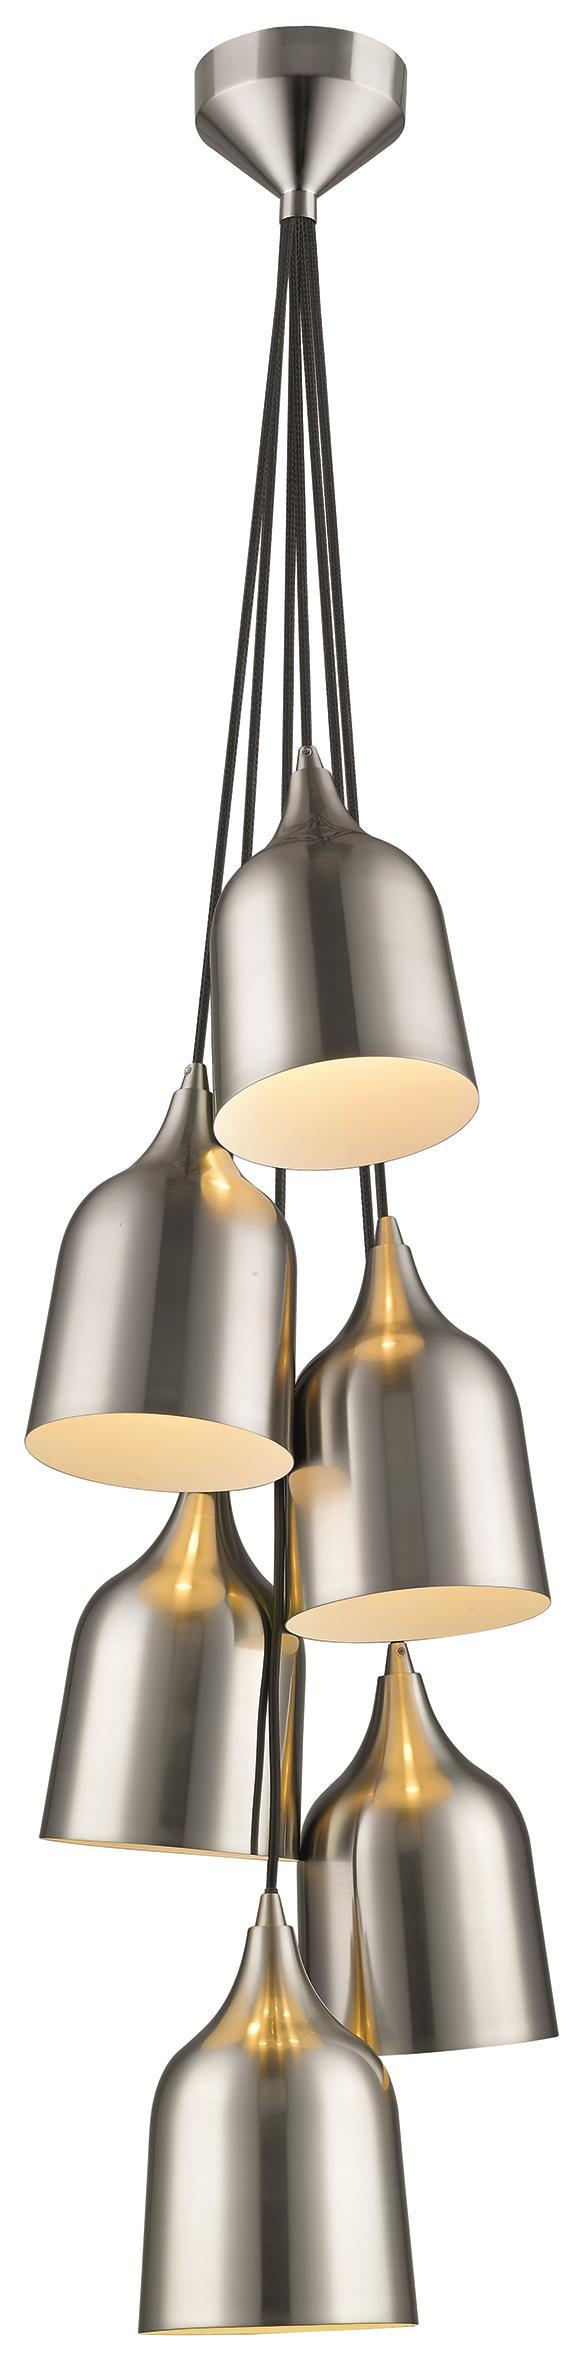 SND Lighting SND168 Craft 6 Light Multi Light Pendant Satin Nickel - SND Electrical Ltd